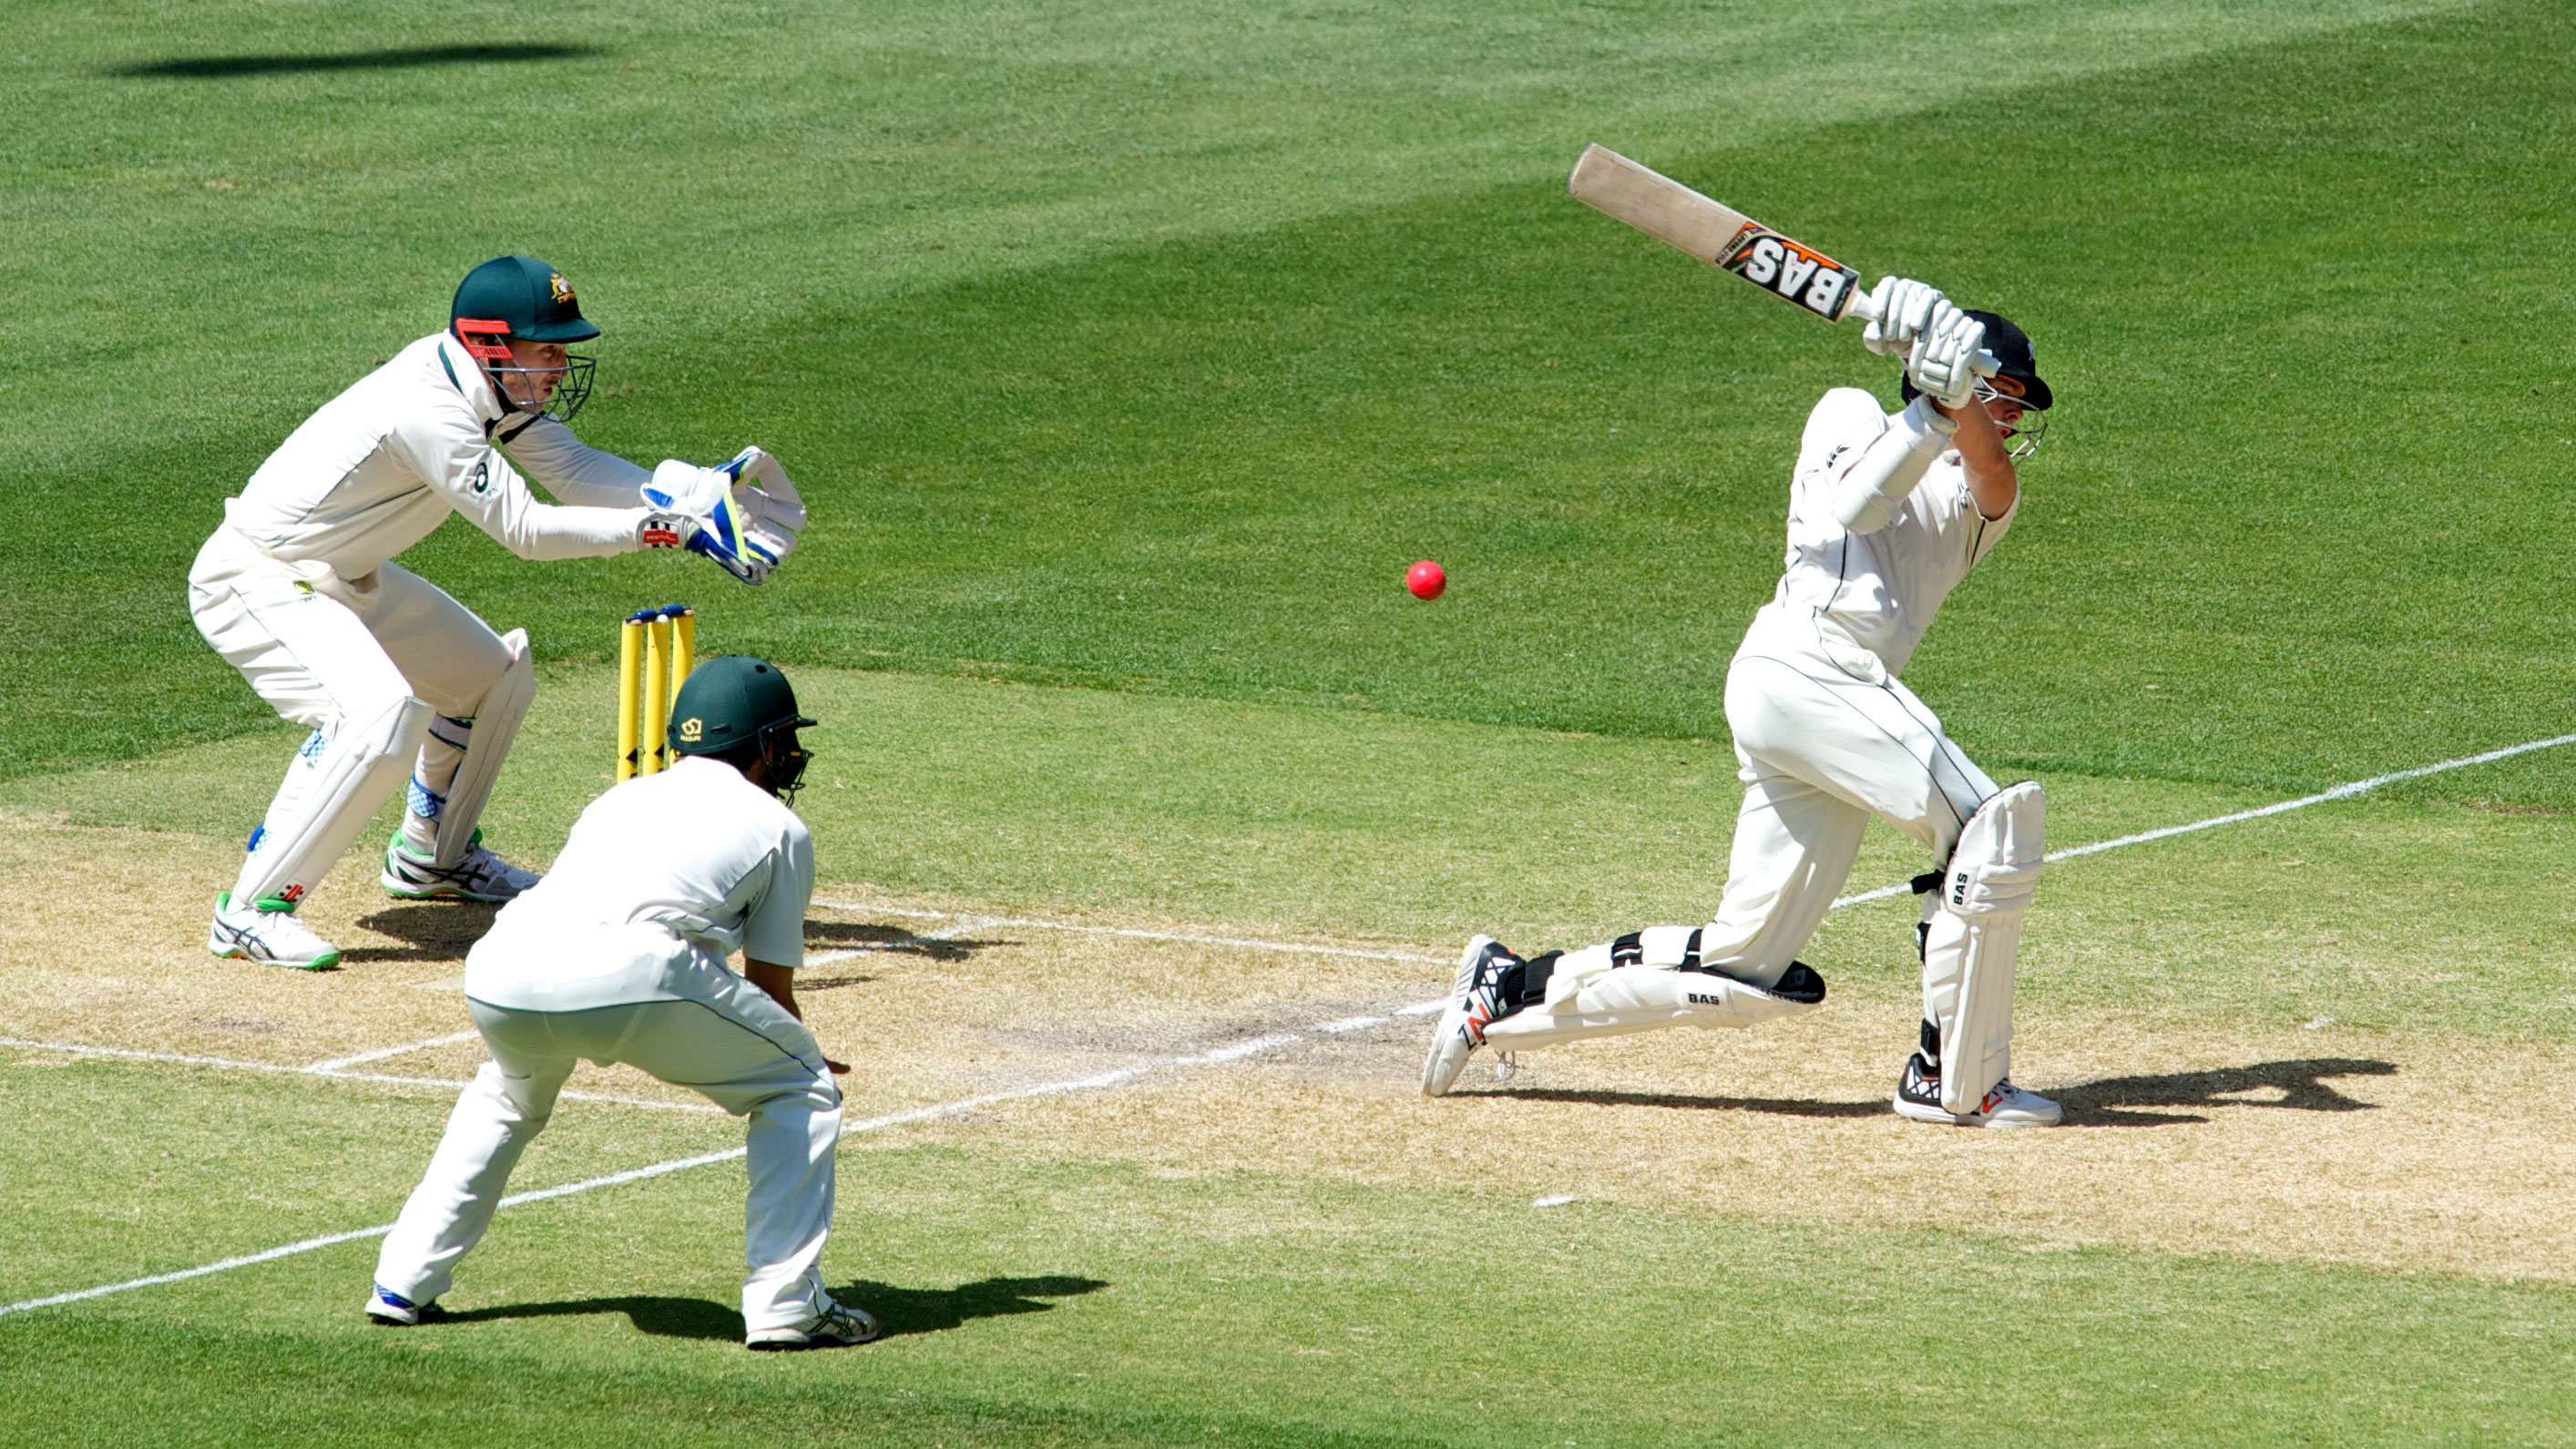 New Zealand's Mitchell Santner swings, misses and end up being stumped. Photo: Michael Errey/InDaily